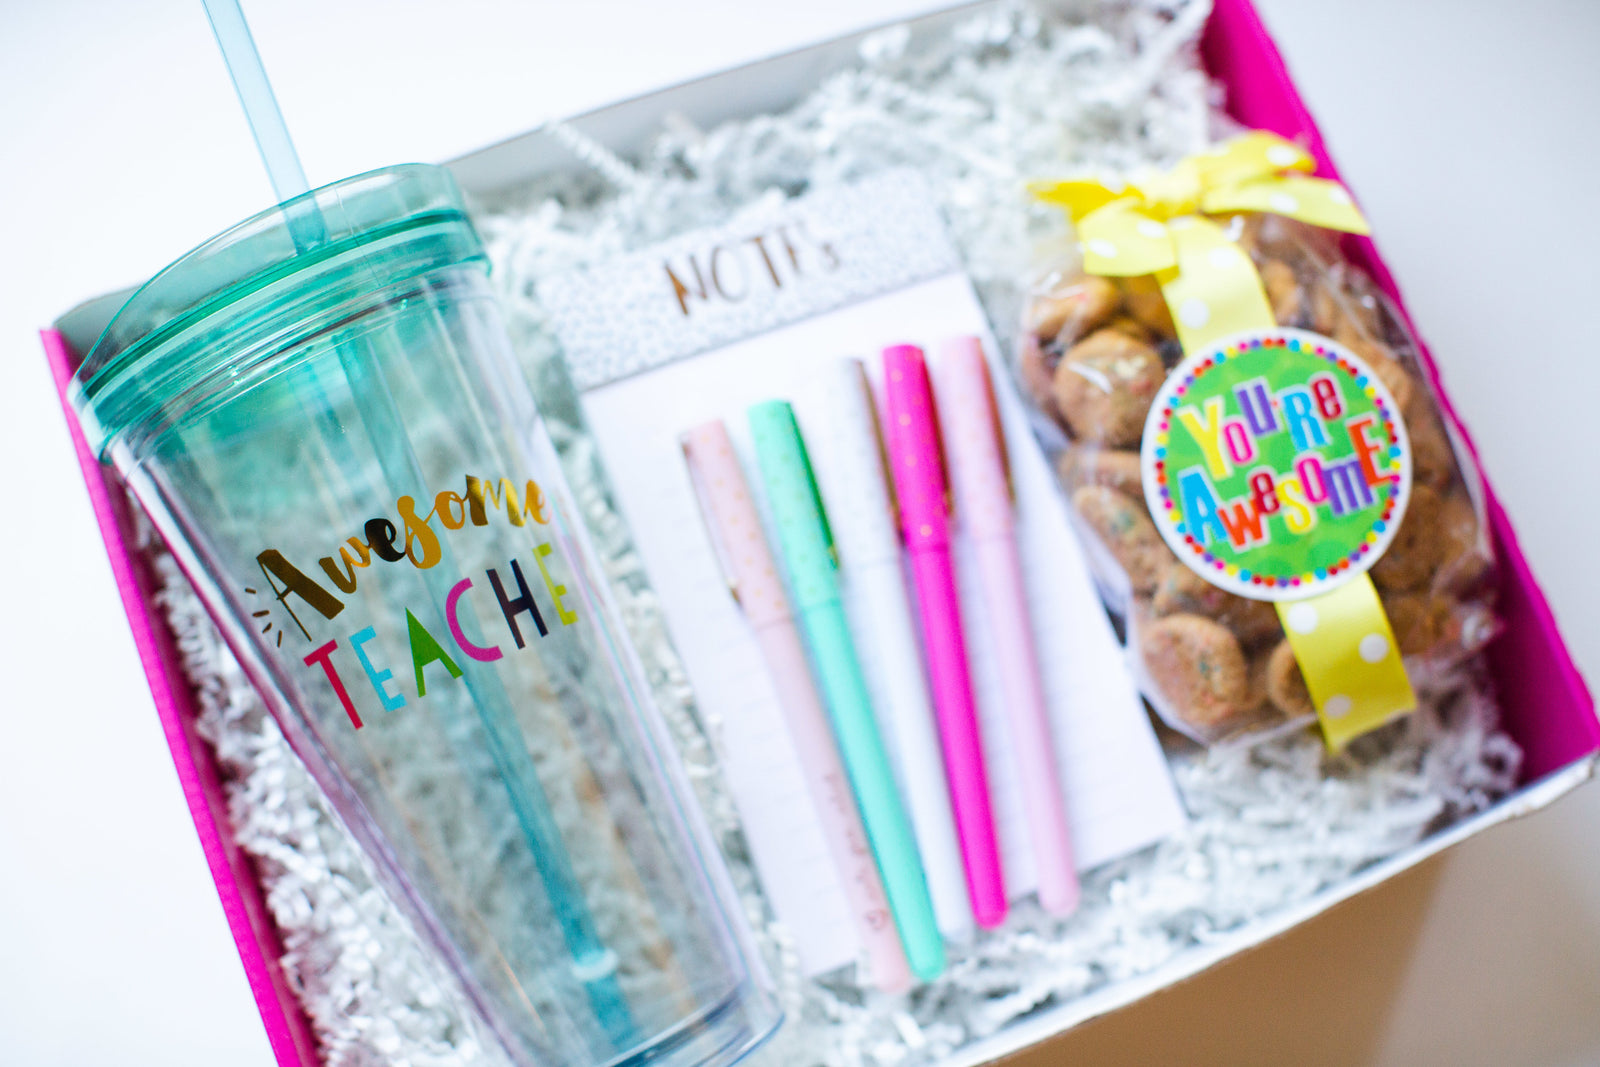 awesome teacher deserves and awesome gift of cookies, pens and tumbler